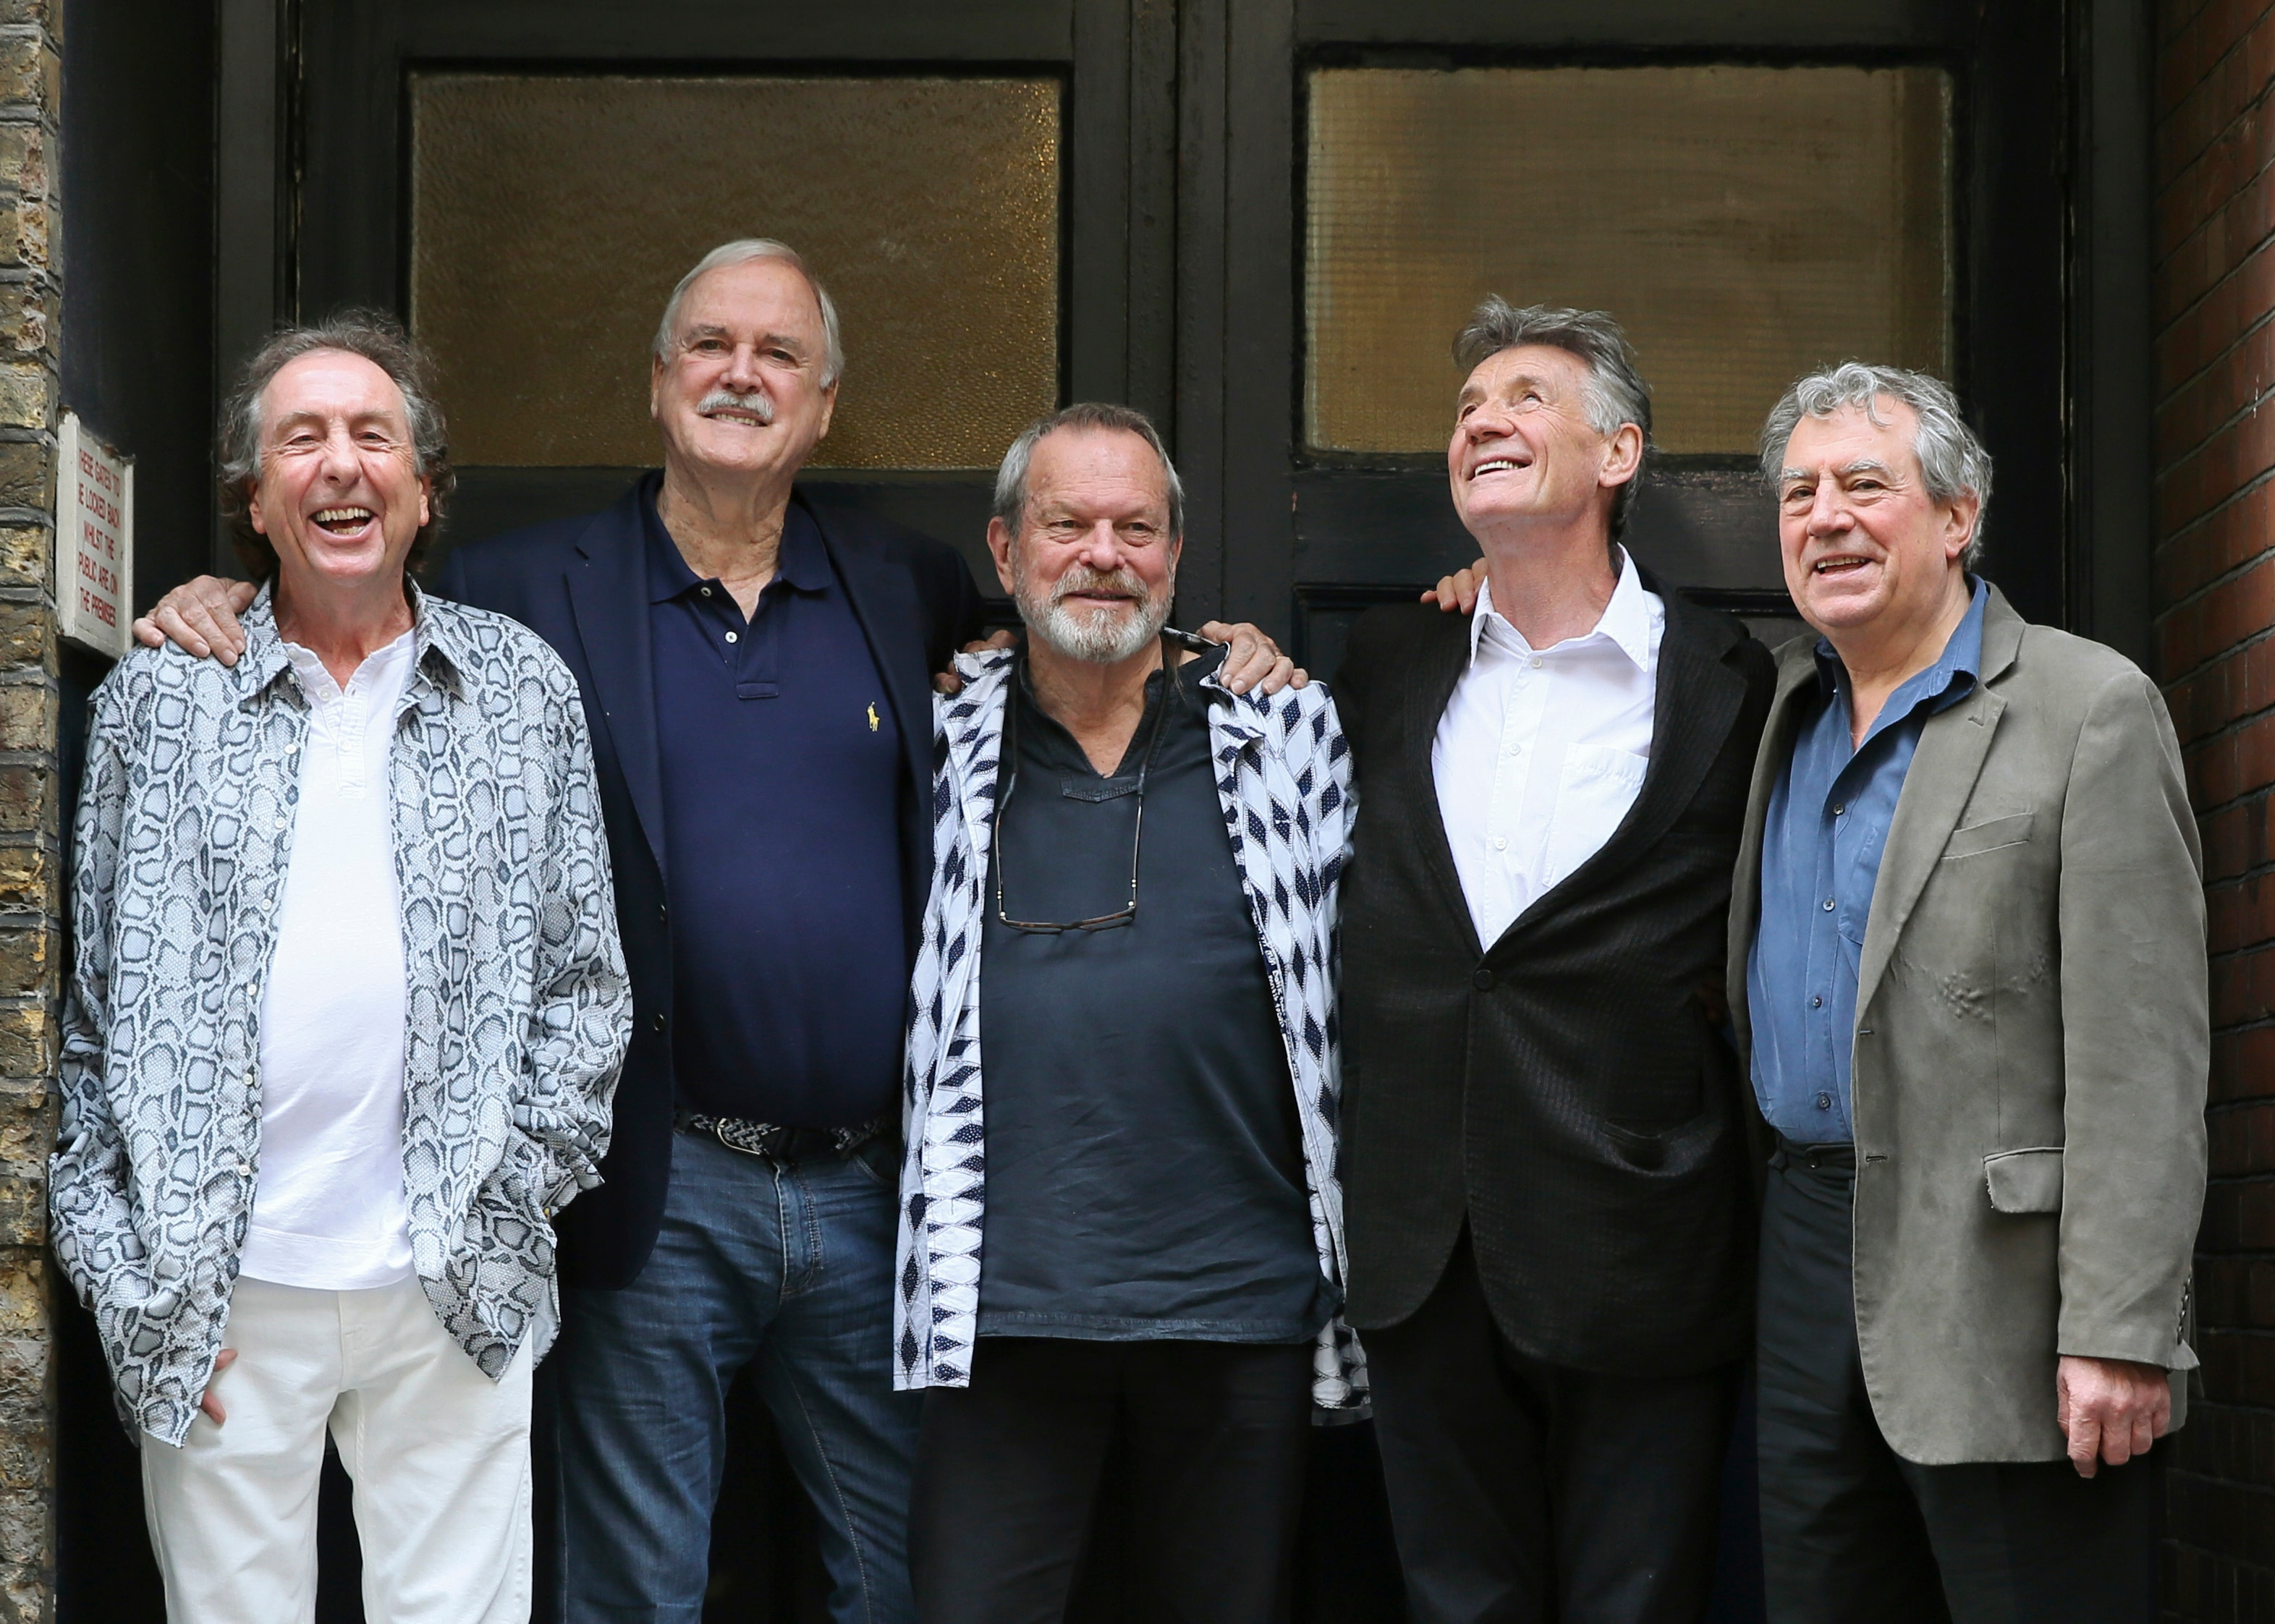 Monty Python Group Performs Probably For Last Time Voice Of America English